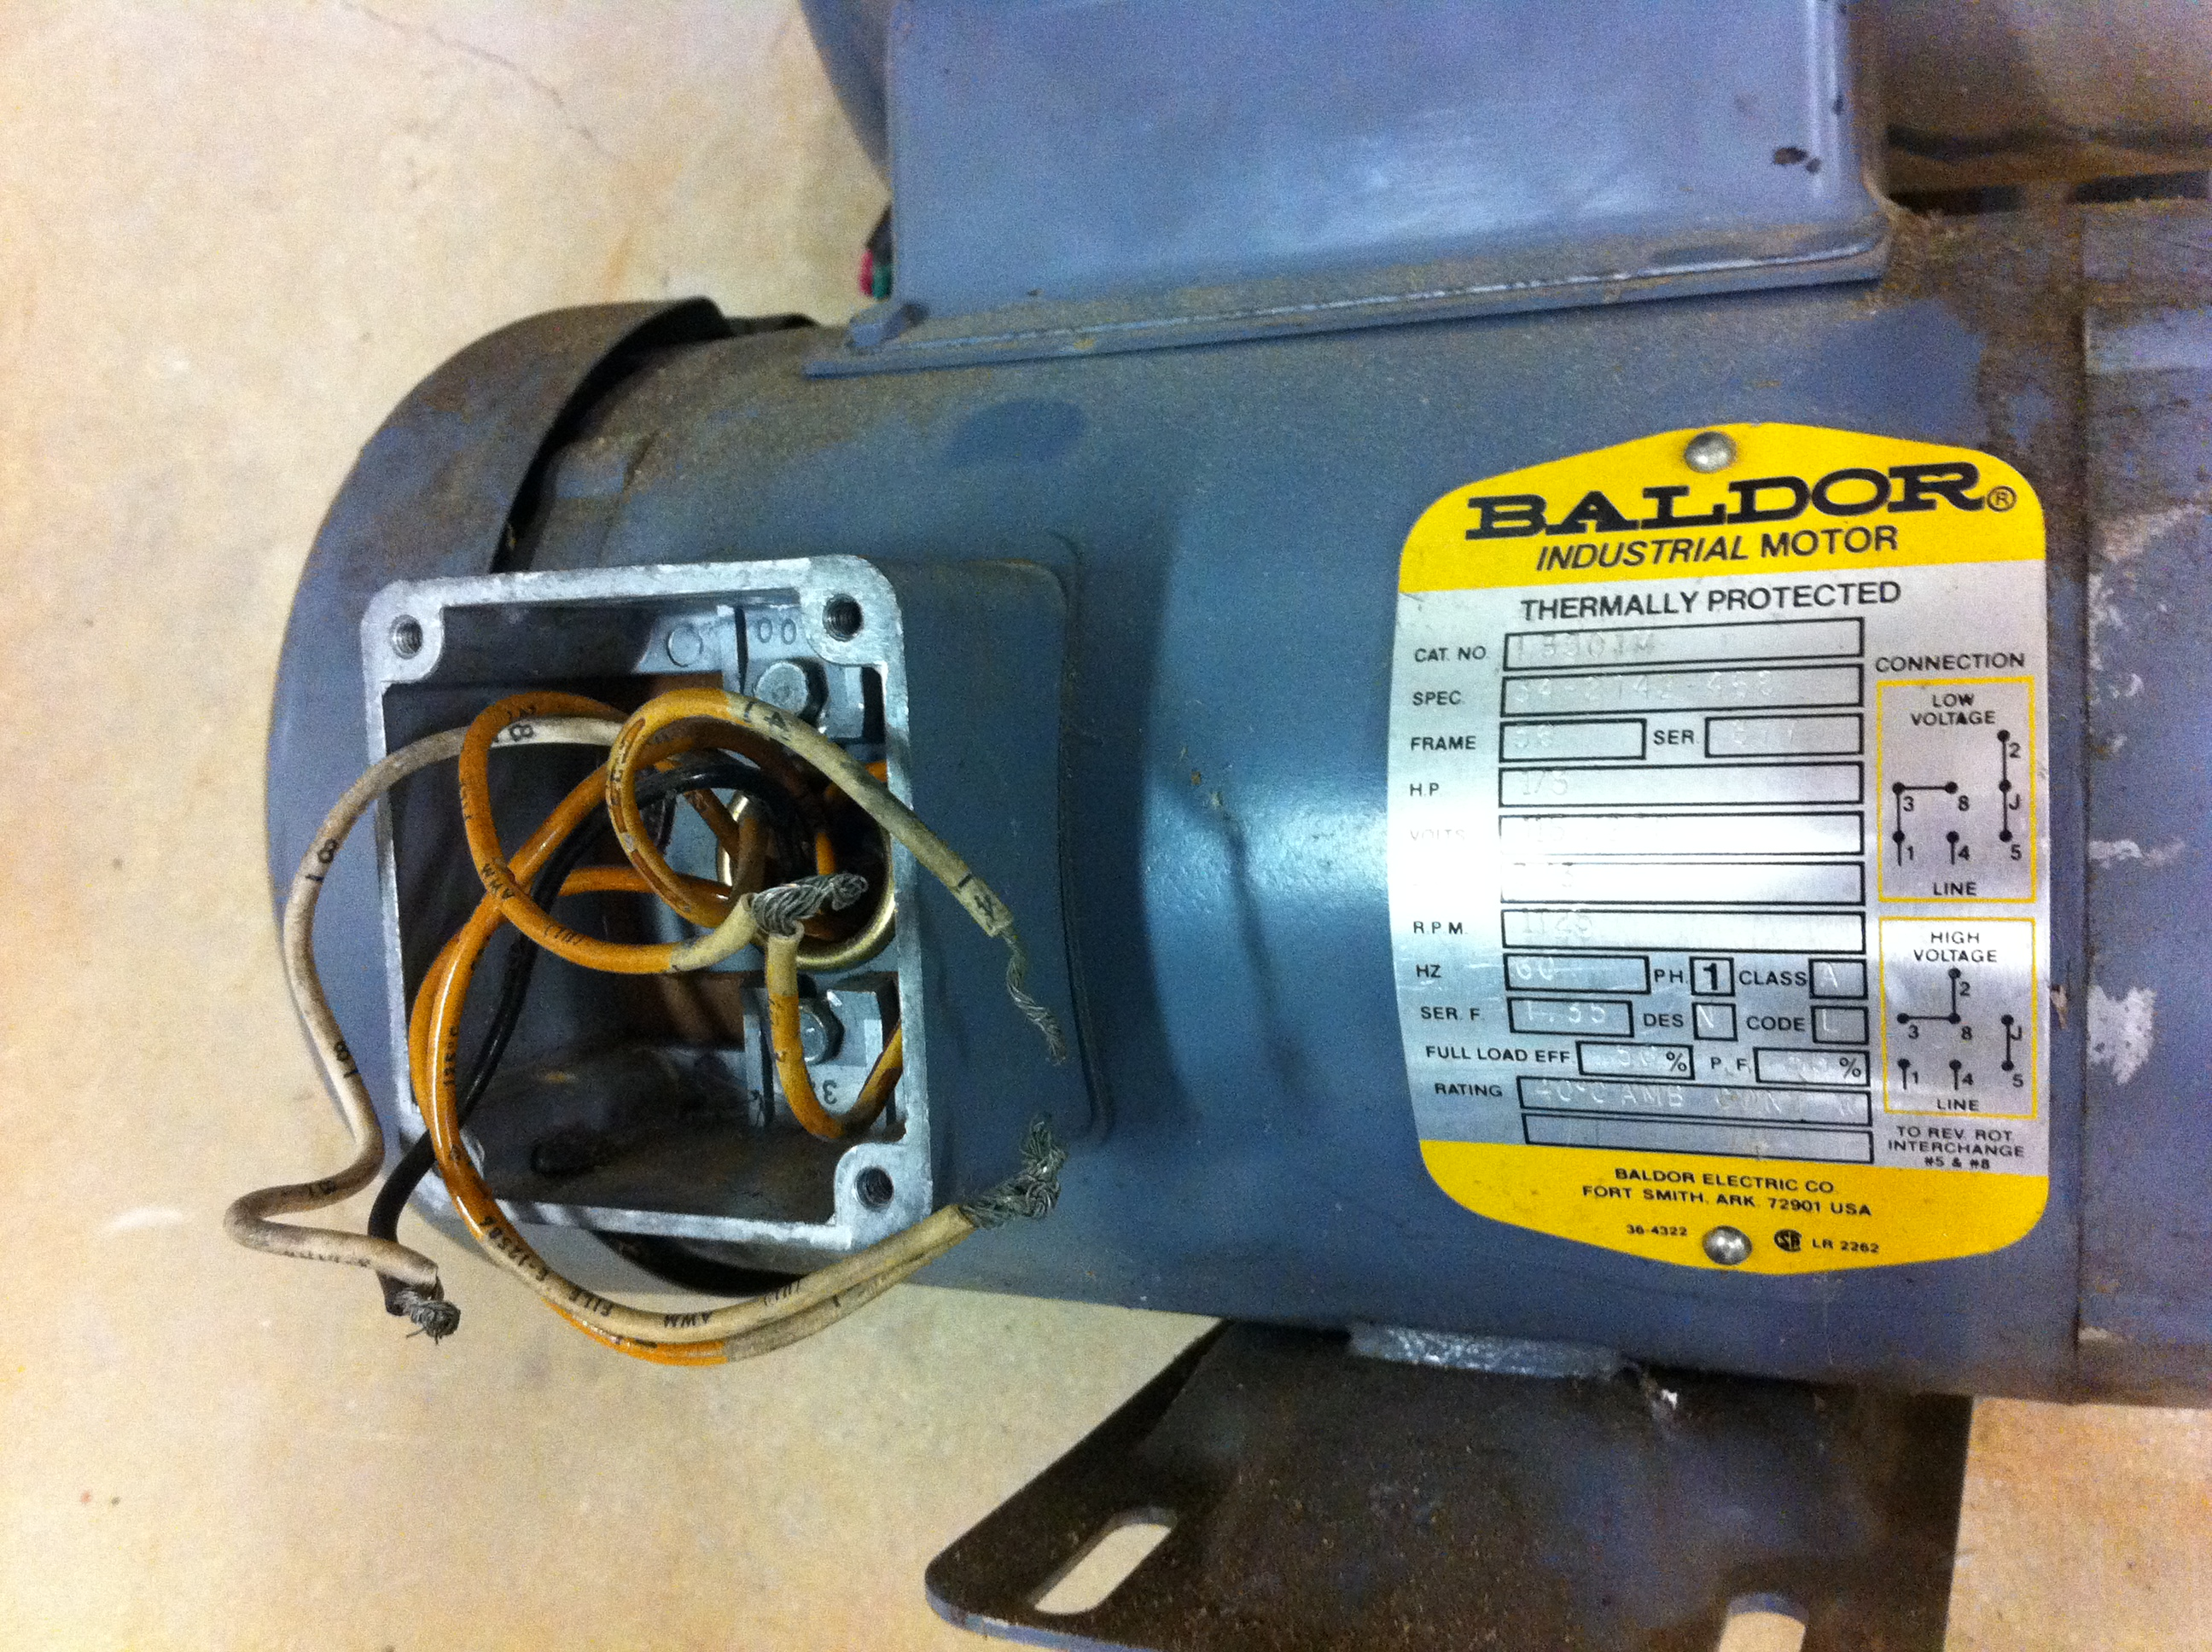 Help Wiring Baldor Motor - The Garage Journal Board